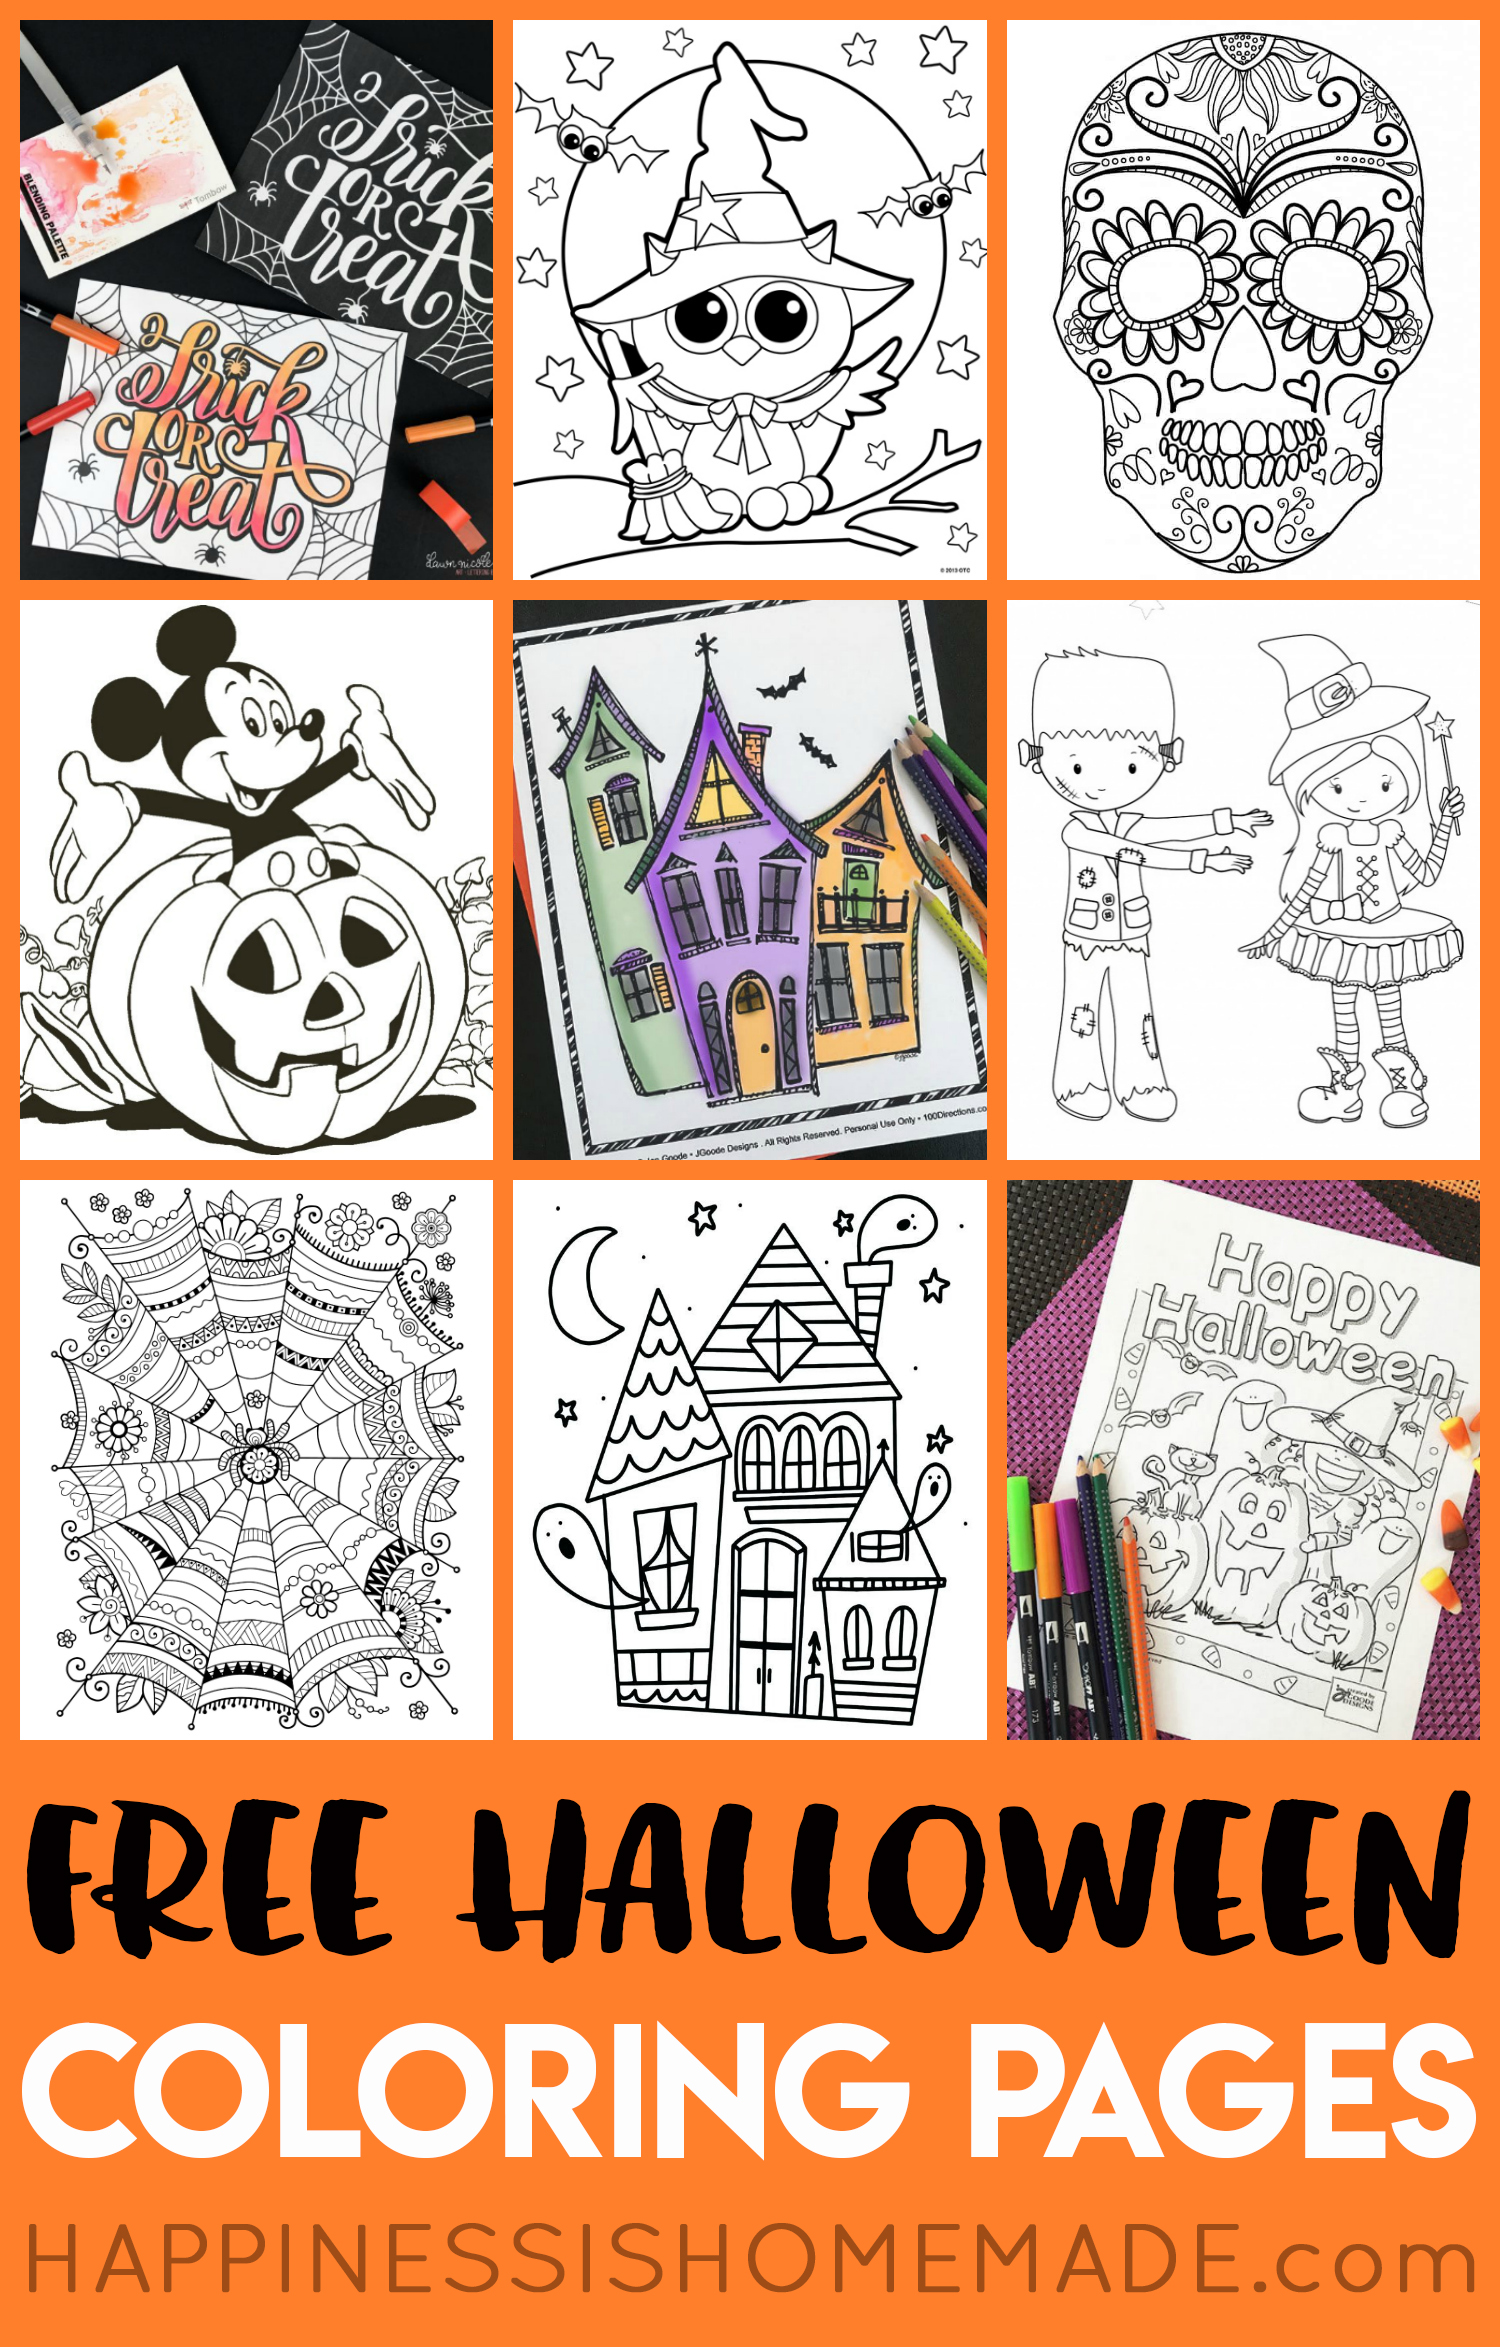 photo relating to Free Printable Halloween Coloring Pages known as Free of charge Halloween Coloring Web pages for Older people Small children - Contentment